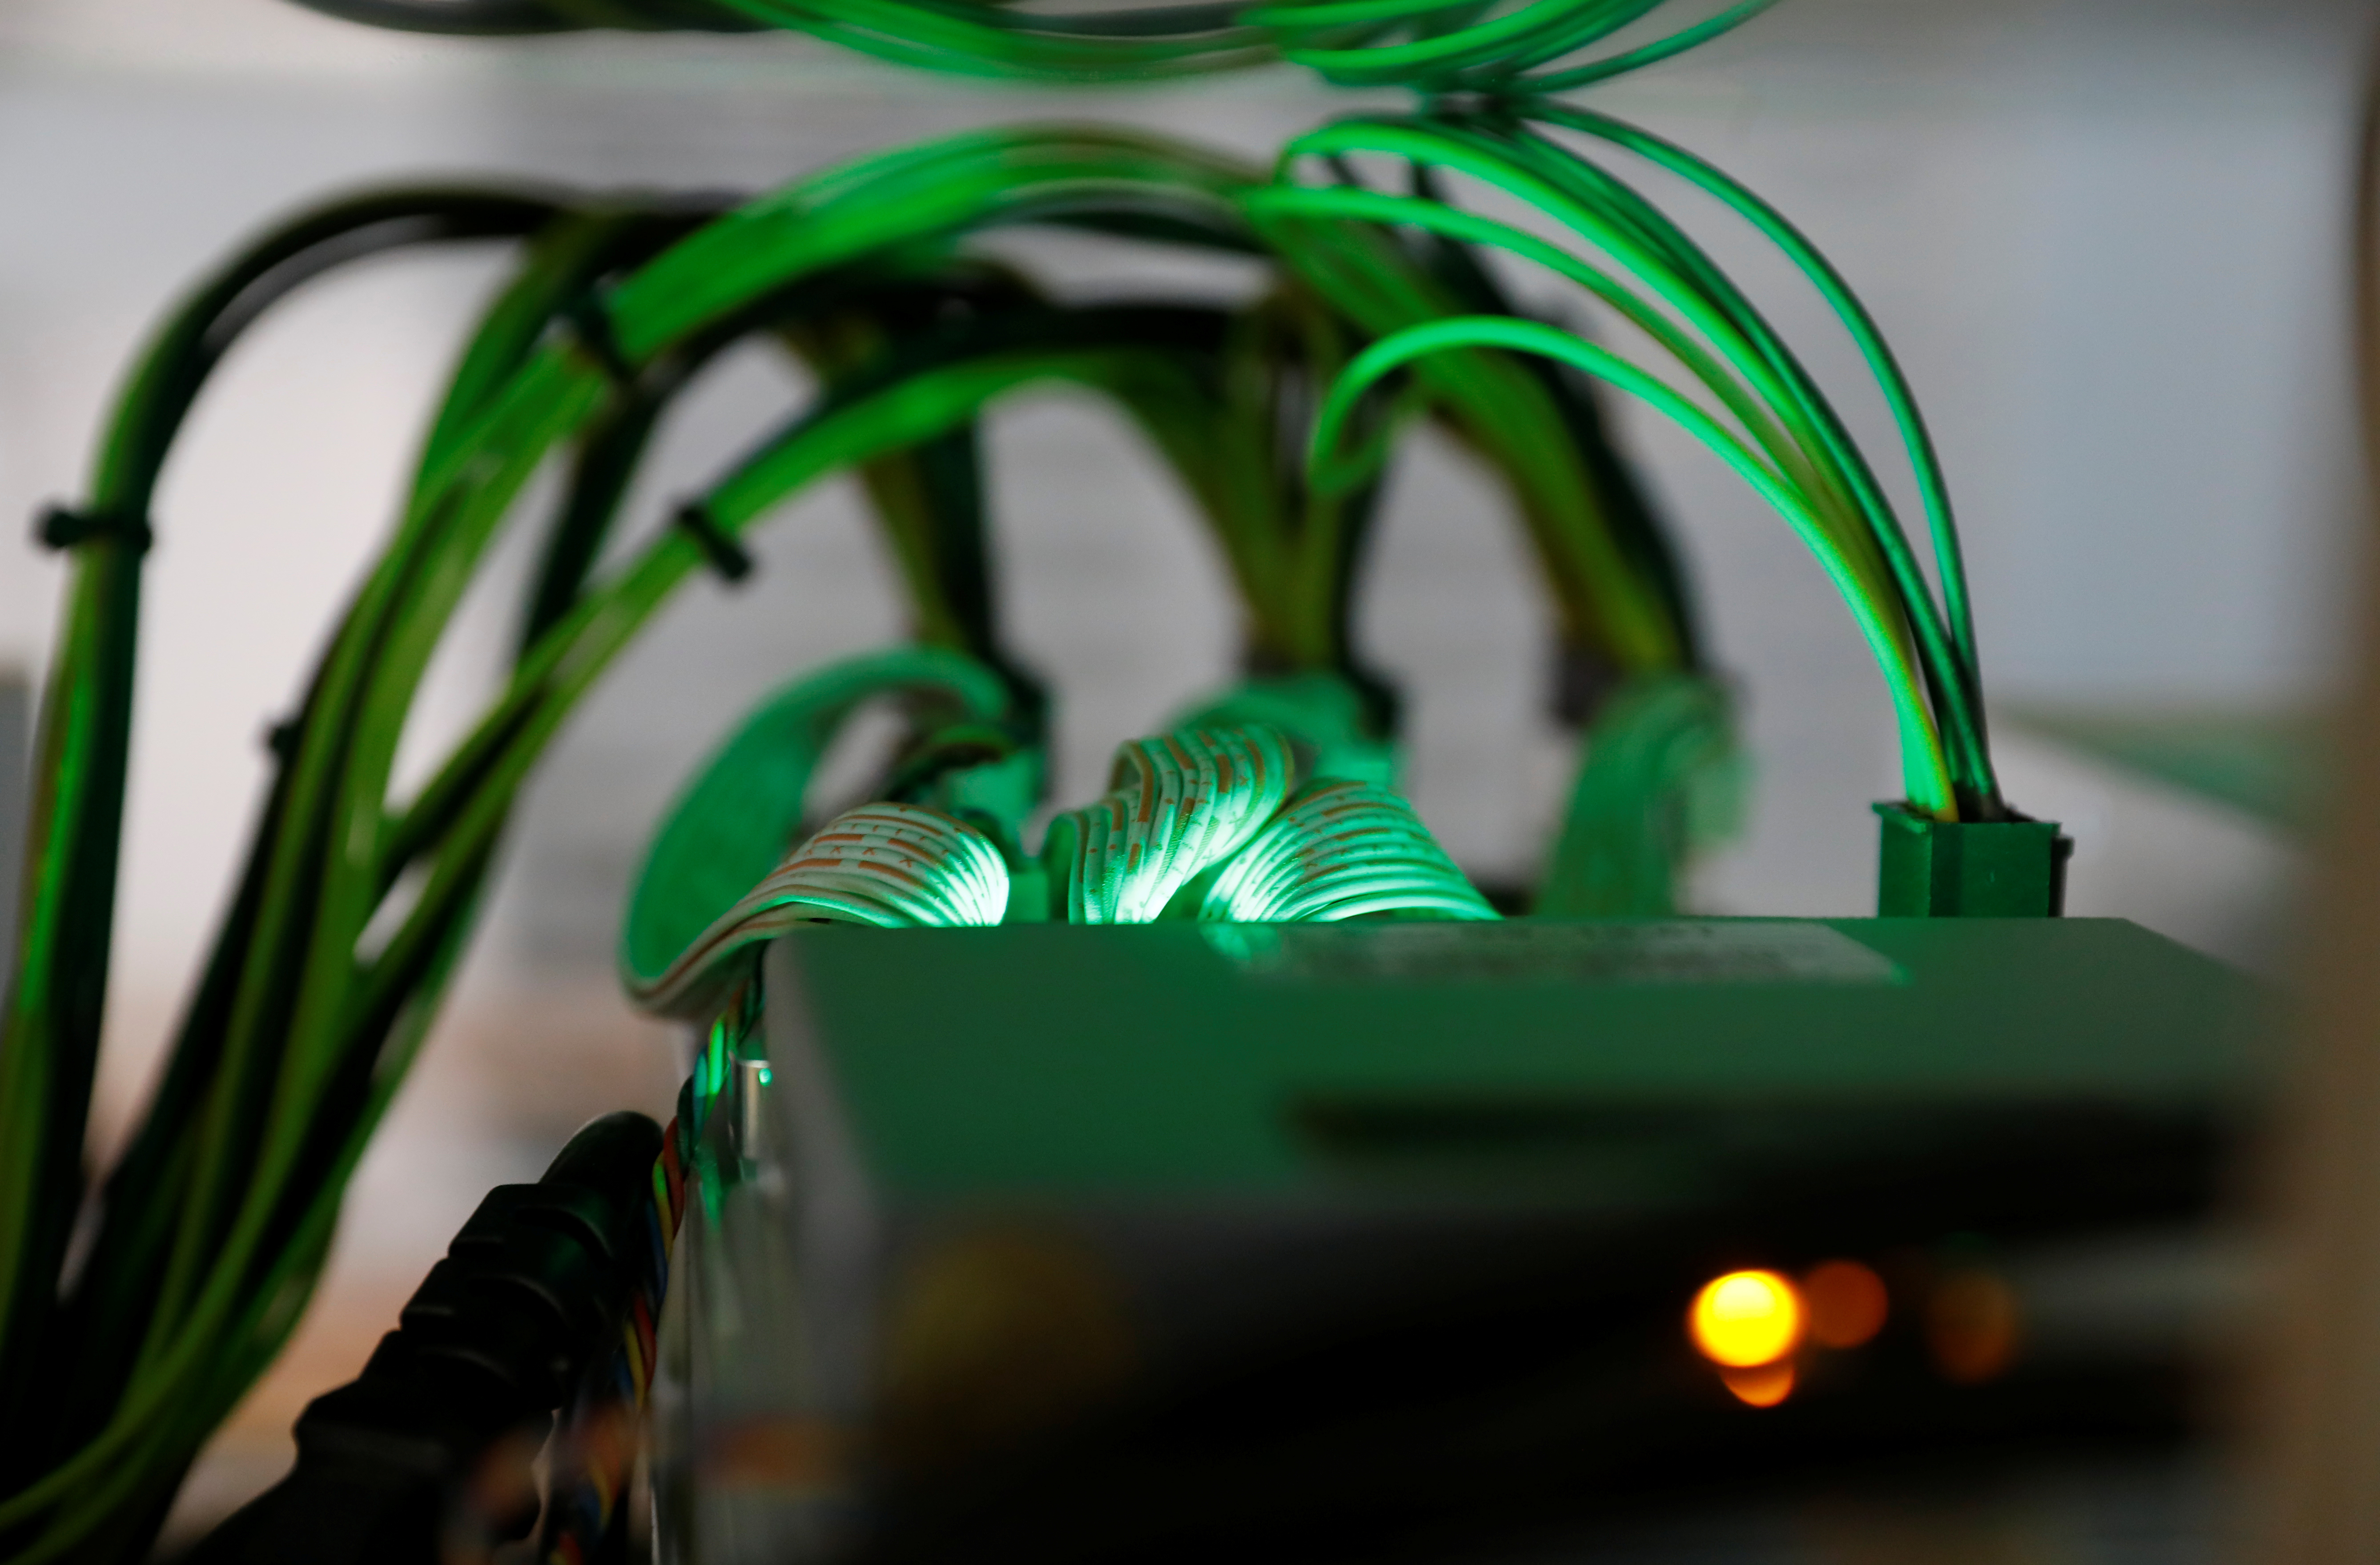 Cables running into cryptocurrency miners are seen at the HydroMiner cryptocurrency farming operation near Waidhofen an der Ybbs